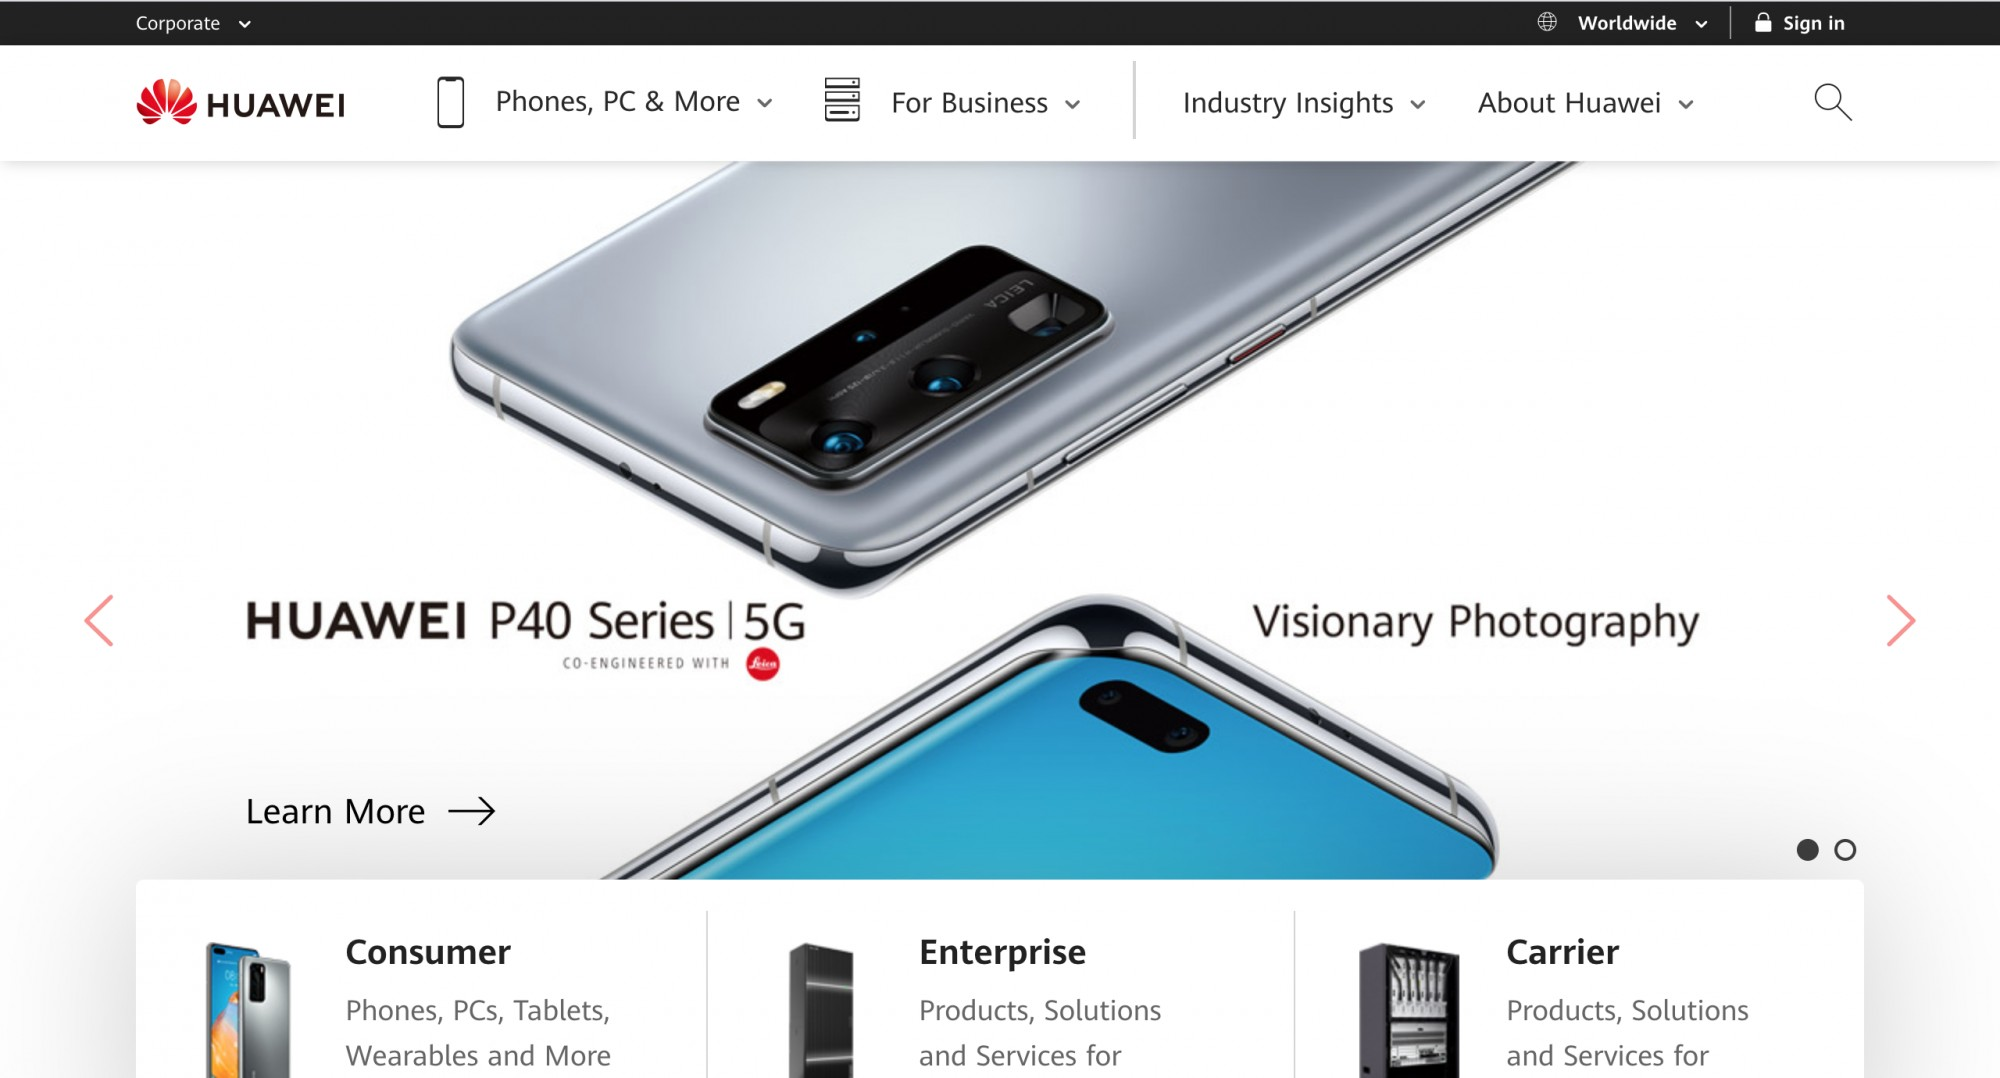 Huawei landing page with P40 Series and main message with buttons